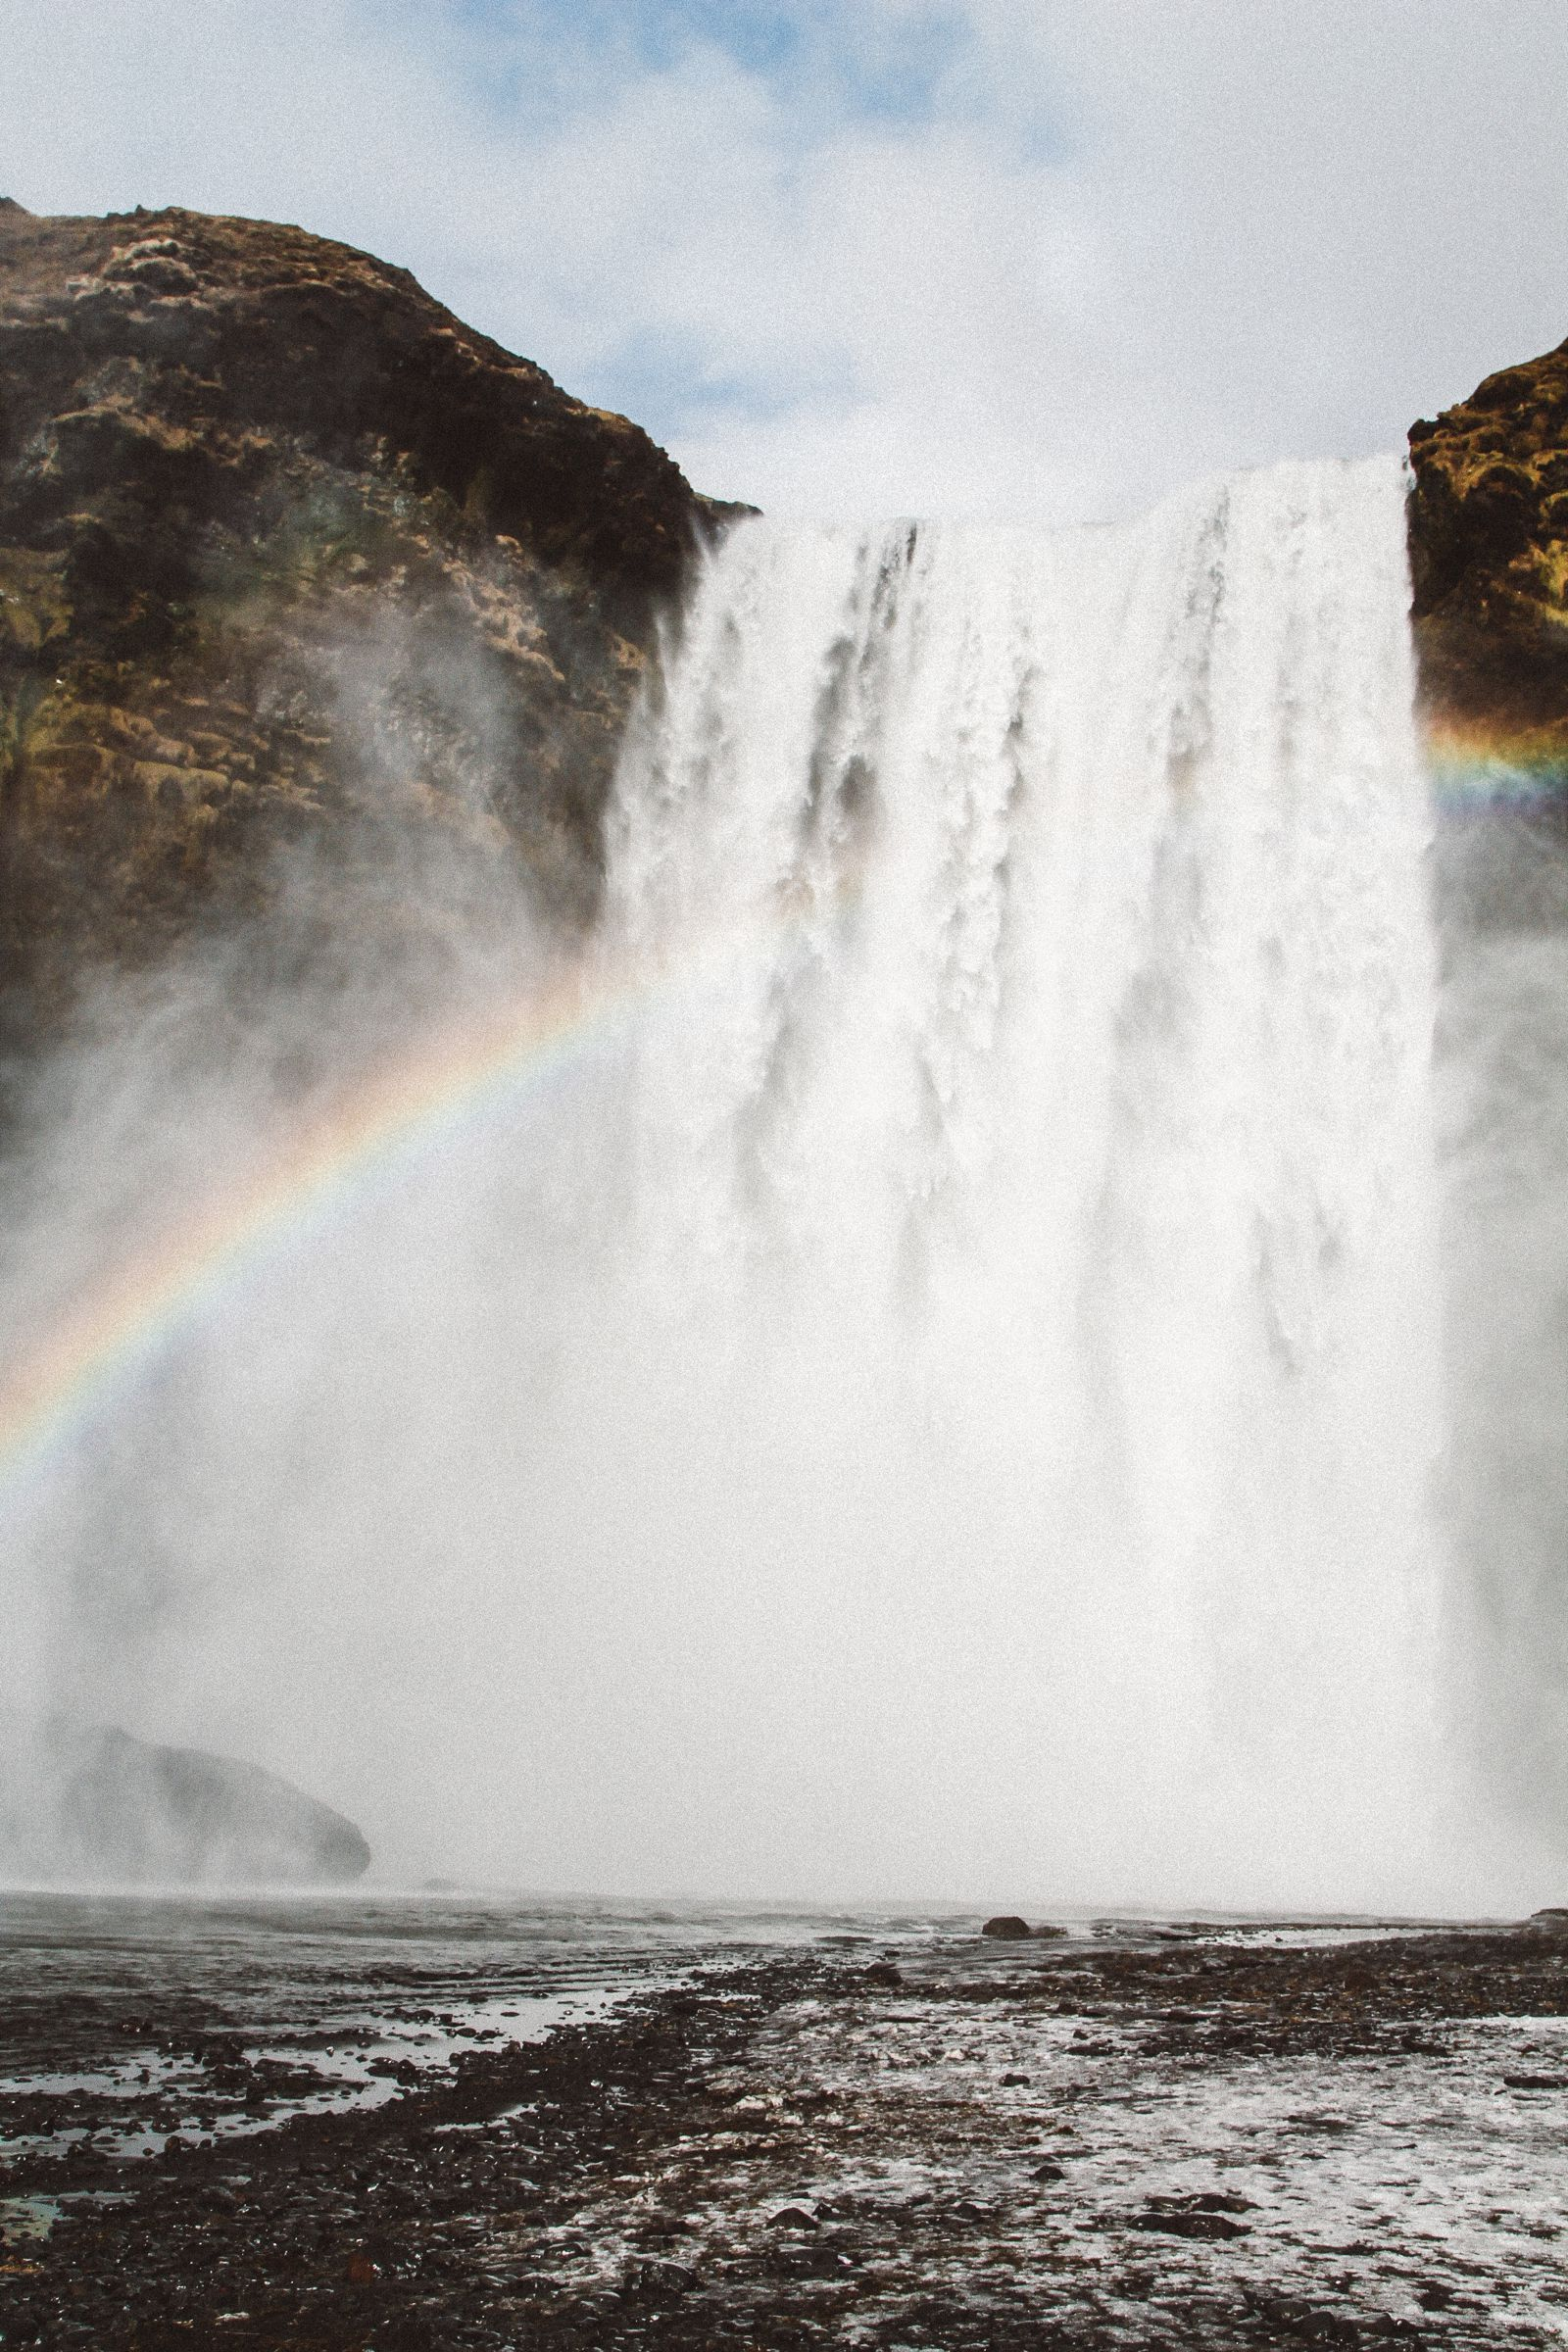 Seljalandsfoss and Skógafoss Waterfalls in Iceland plus Icelandic Lamb and rainbows (39)